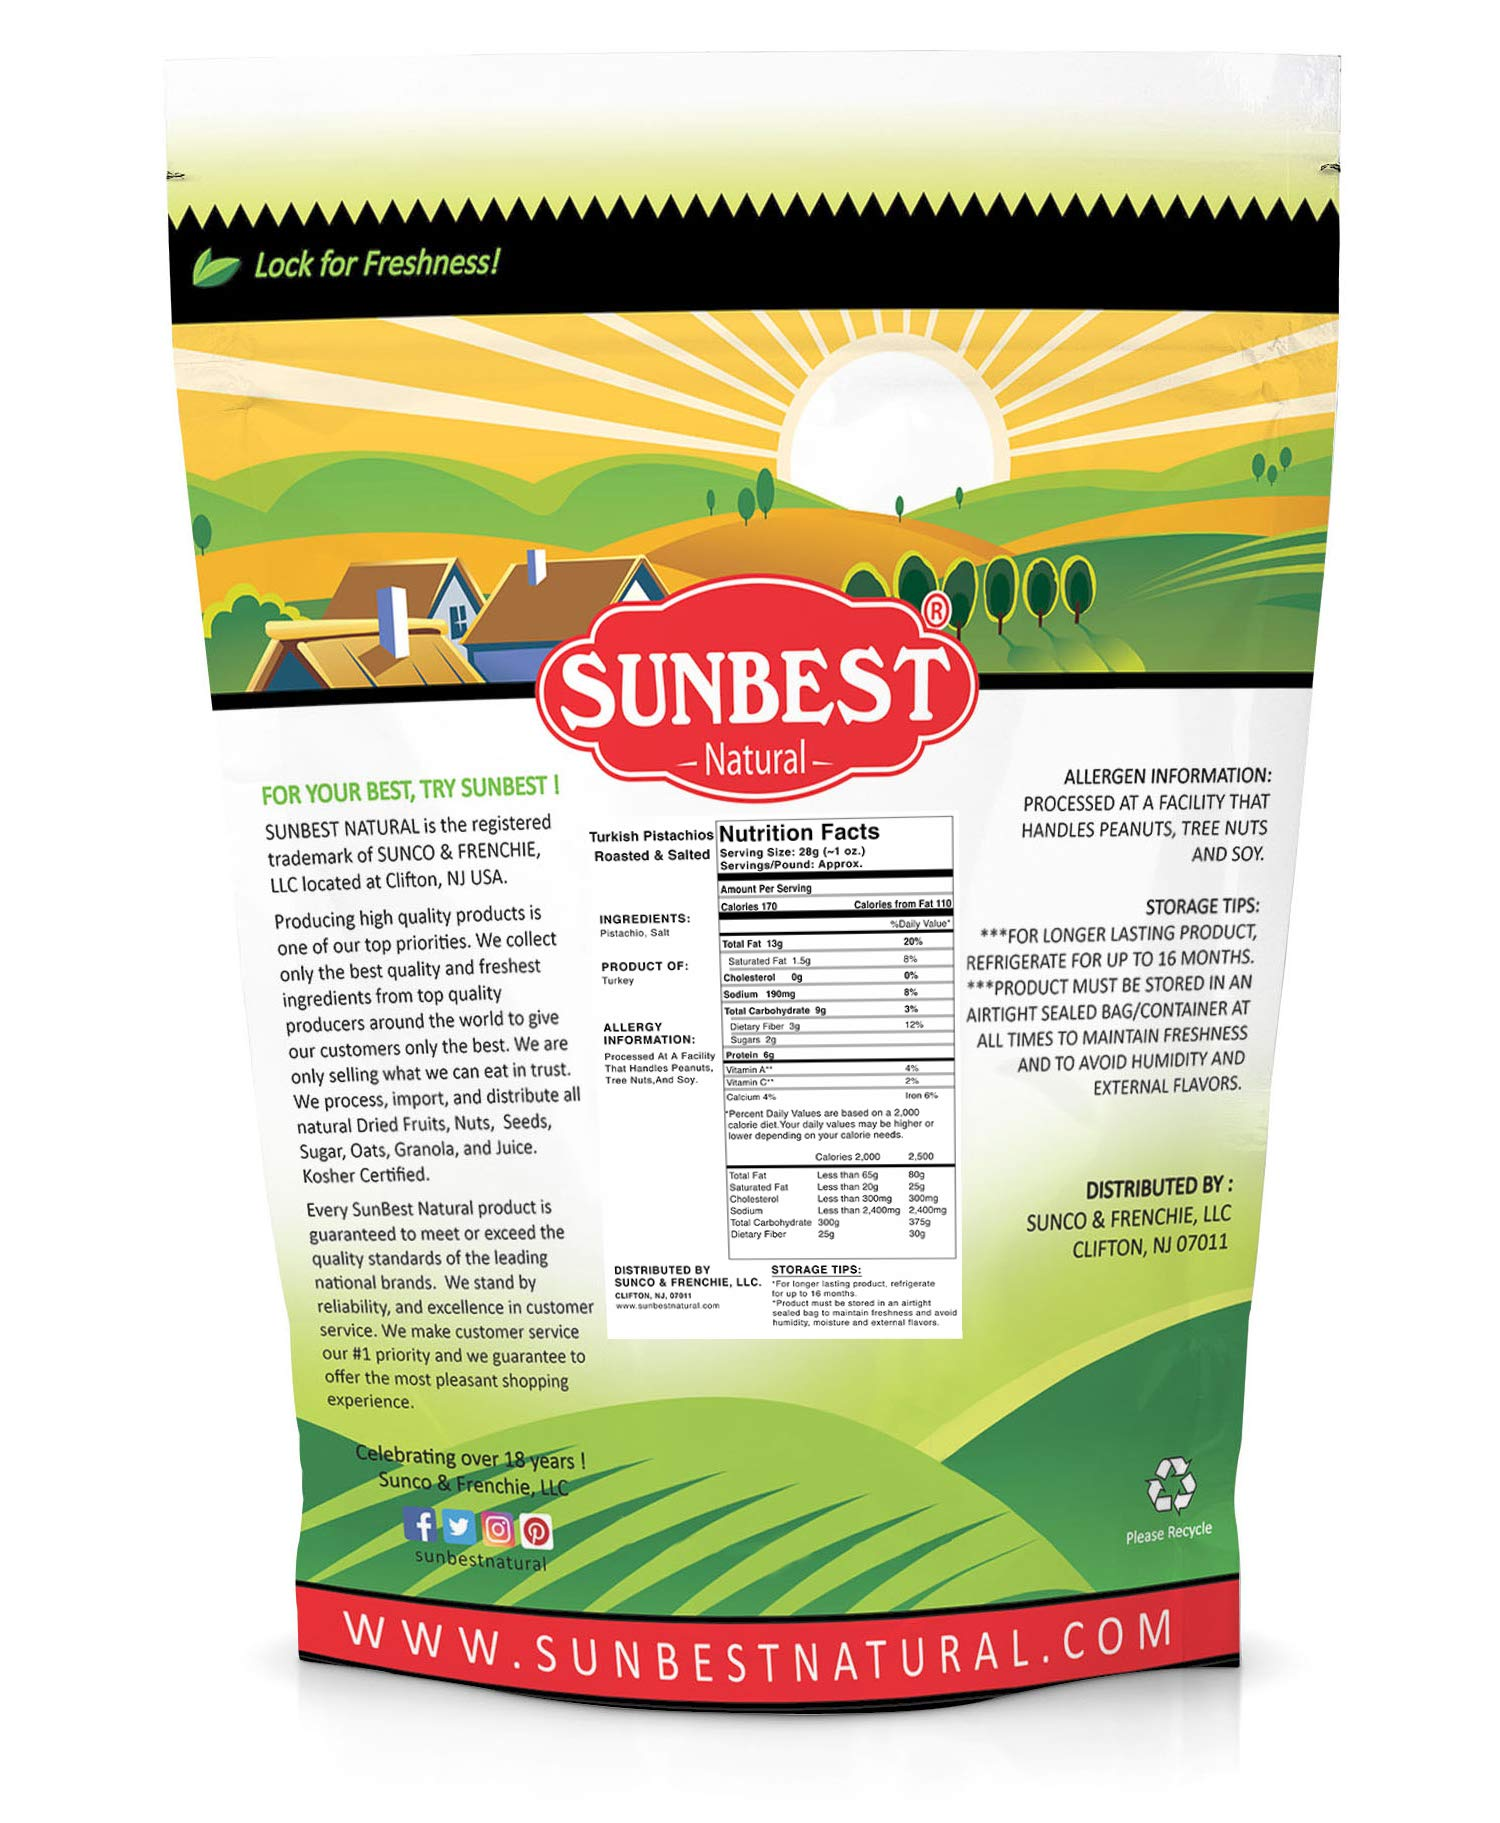 SUNBEST TURKISH PISTACHIOS ANTEP ROASTED AND SALTED IN RESEALABLE BAG (3 Lb) by Sunbest (Image #2)